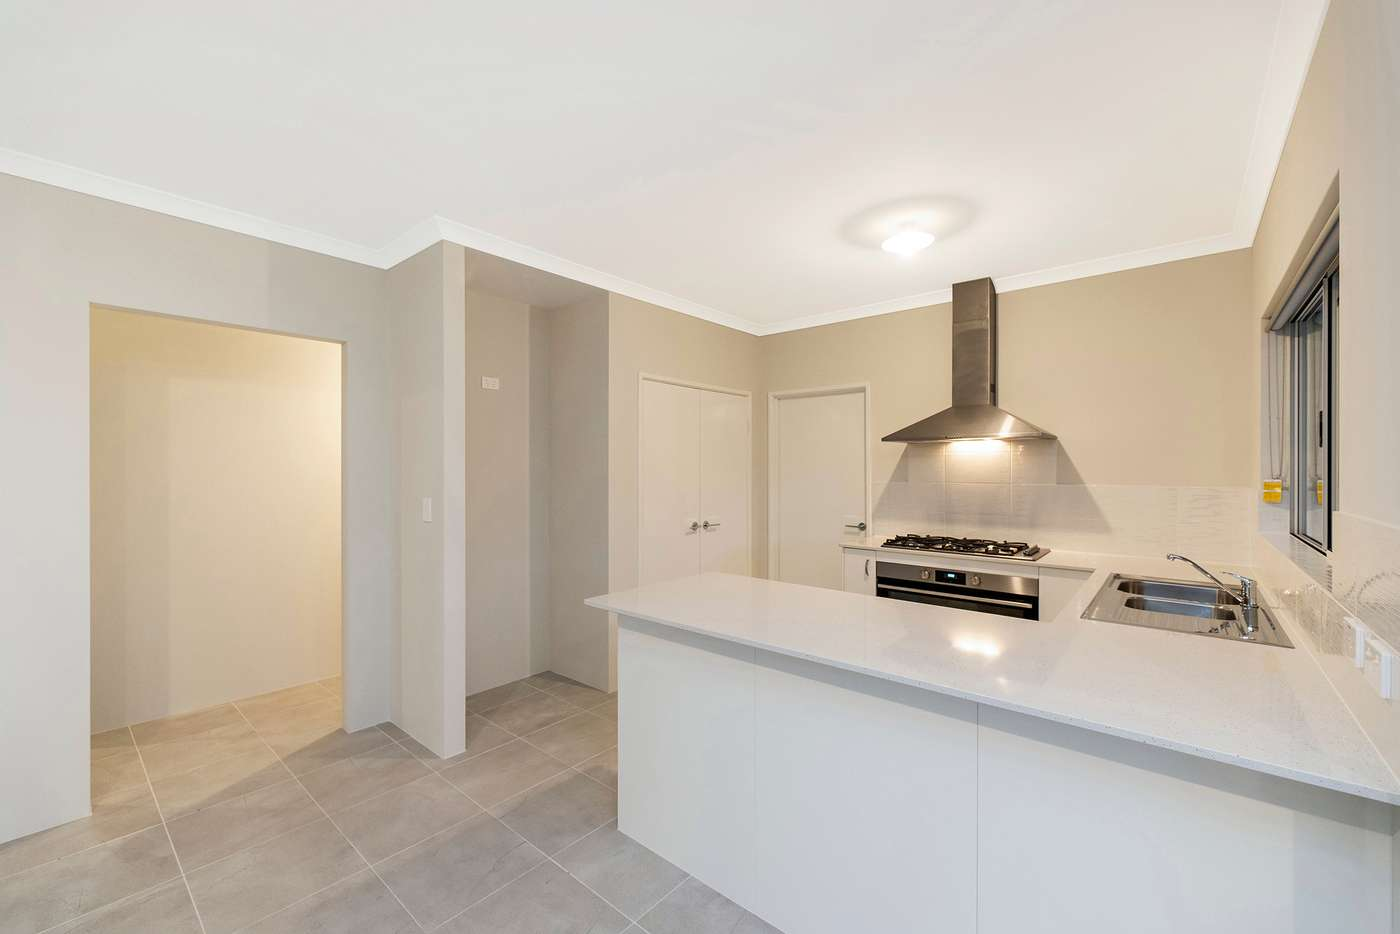 Seventh view of Homely house listing, 64 Mistral Street, Falcon WA 6210